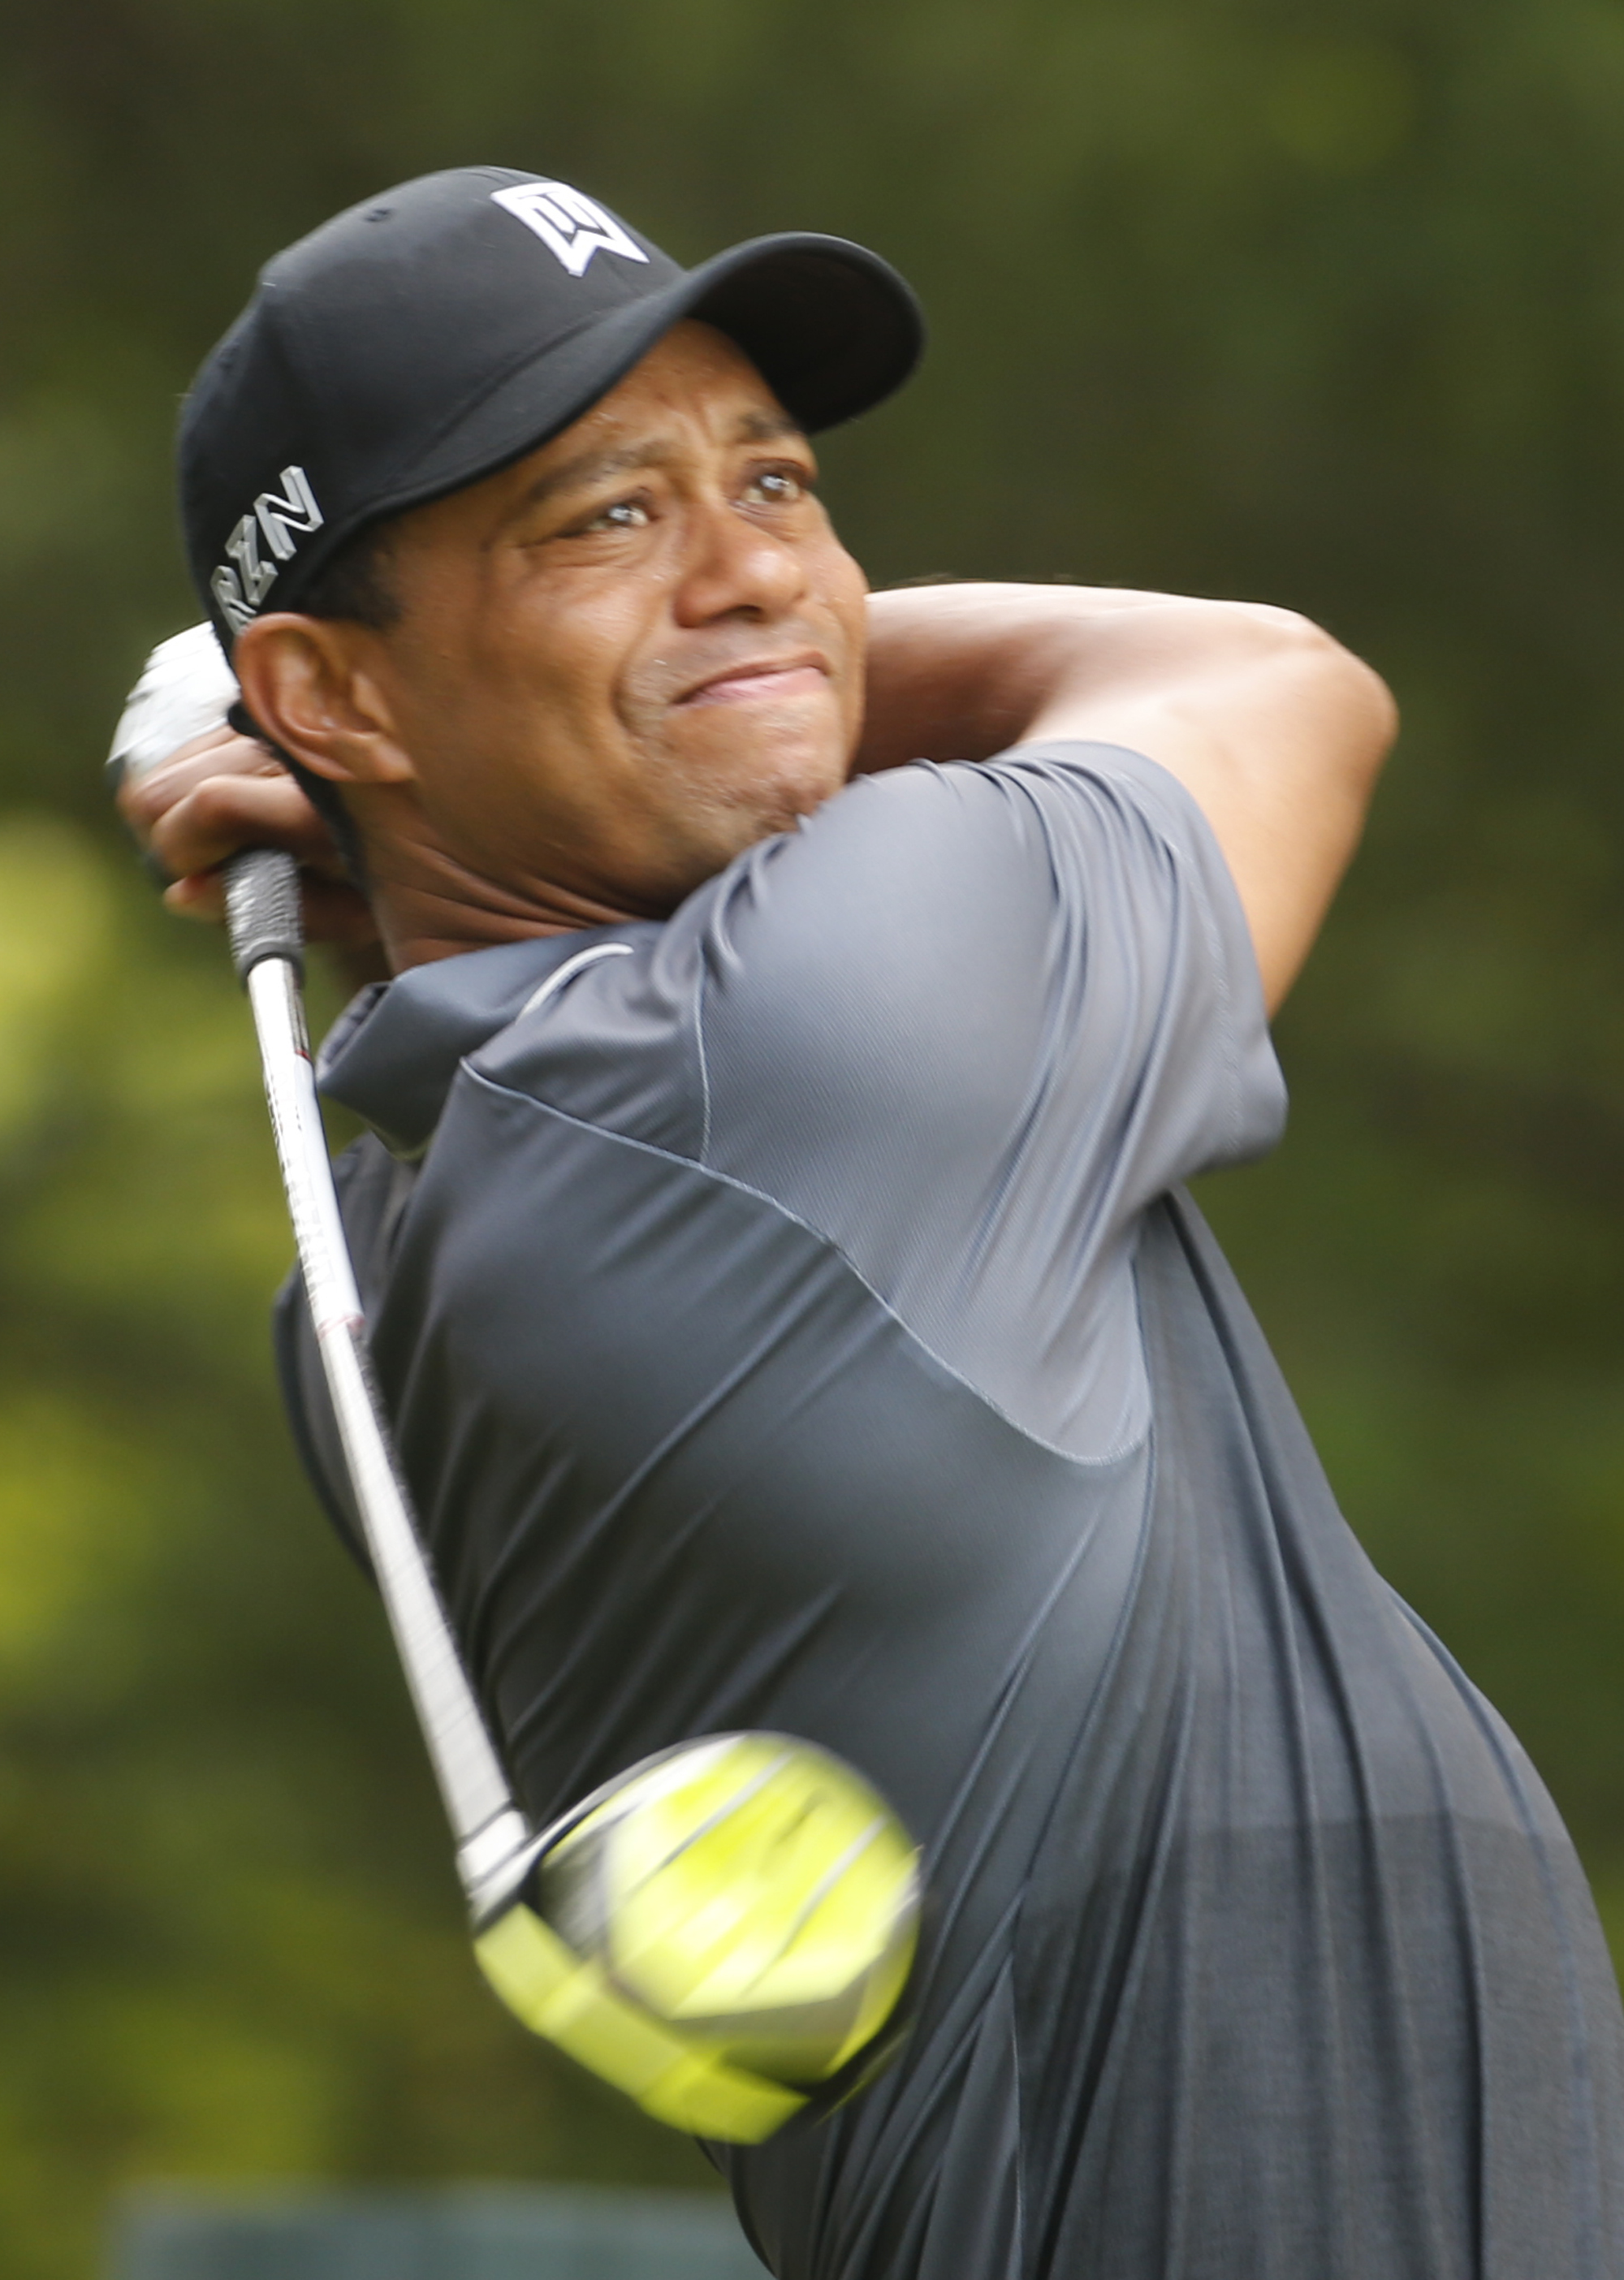 Tiger Woods watches his tee shot on the 15th hole during the pro-am for the Quicken Loans National Golf tournament at the Robert Trent Jones Golf Club in Gainesville, Va., Wednesday, July 29, 2015.  (AP Photo/Steve Helber)